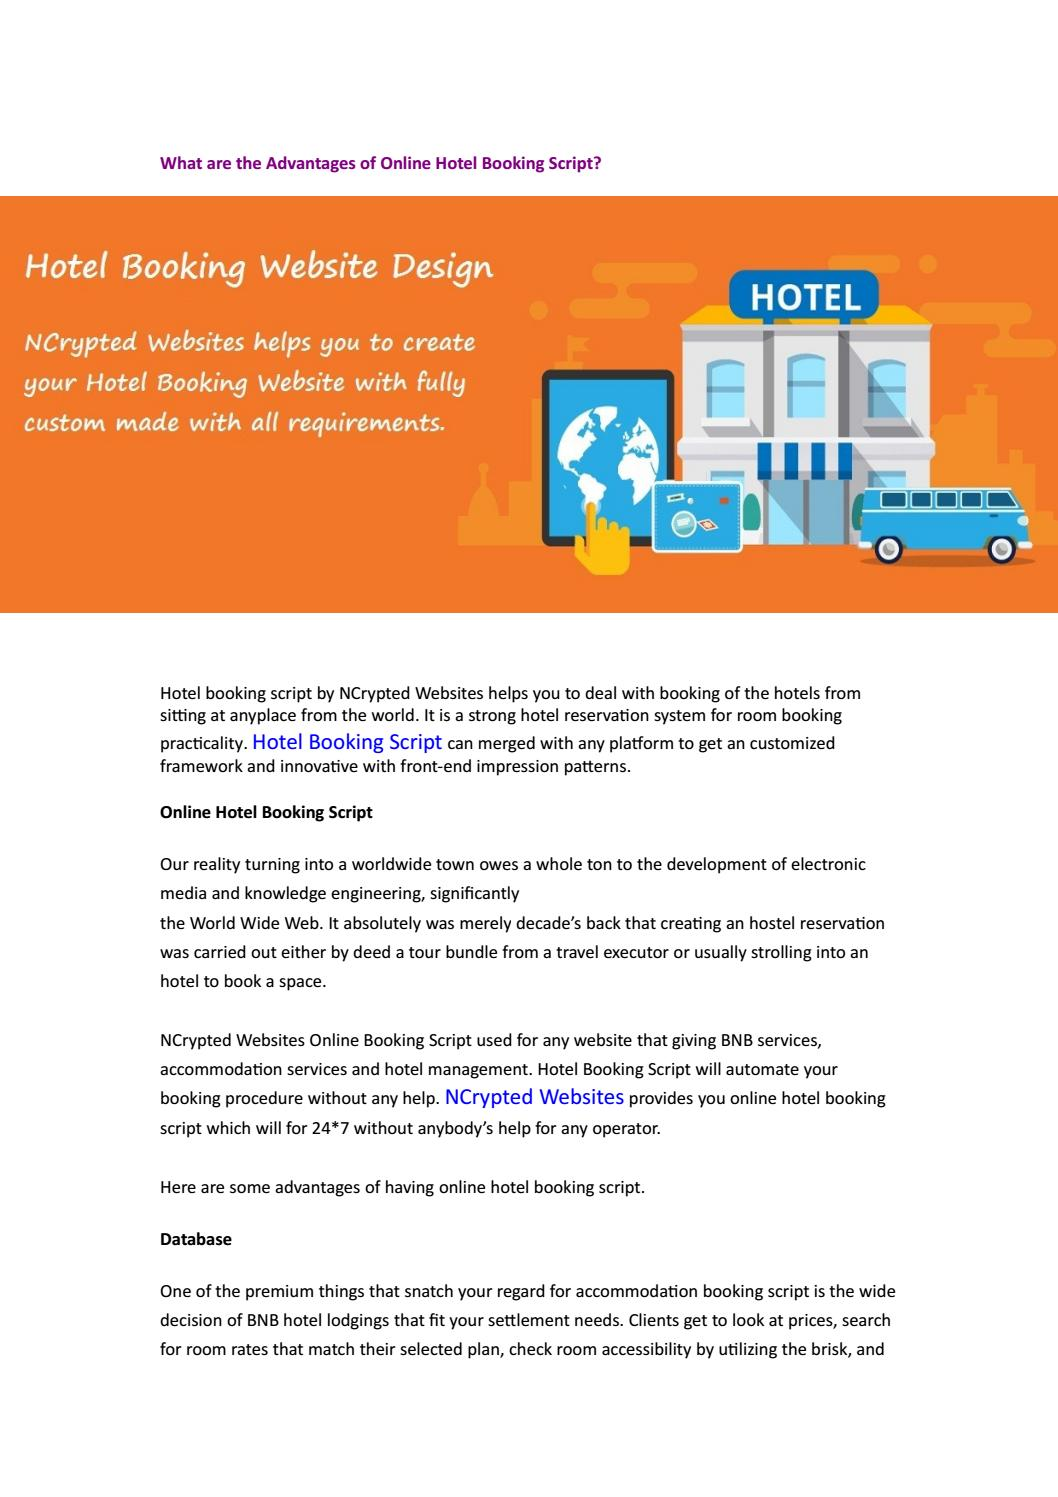 What are the Advantages of Online Hotel Booking Script? by James